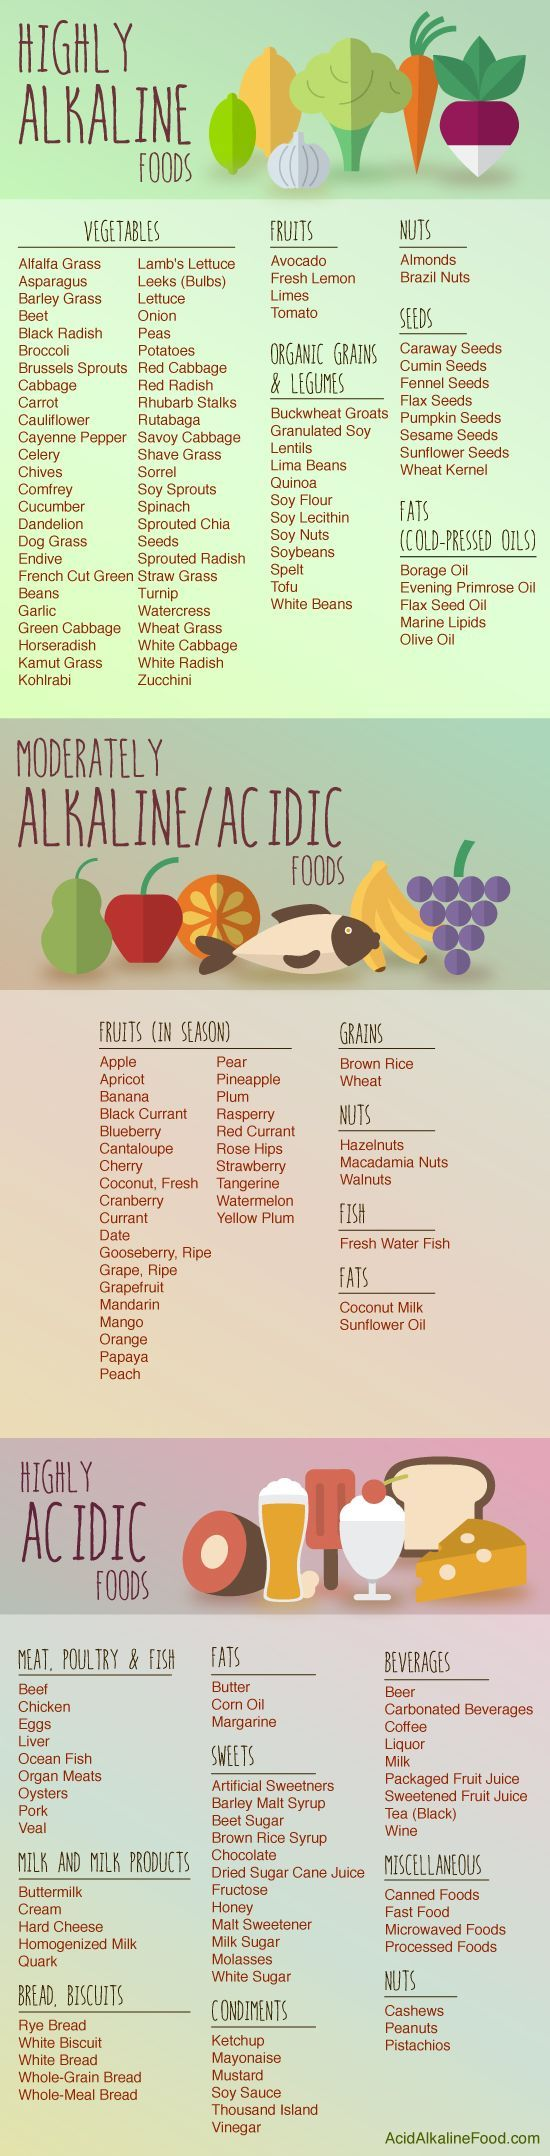 14 Most Alkaline Foods & Drinks (& Why They are Actually Good for You)